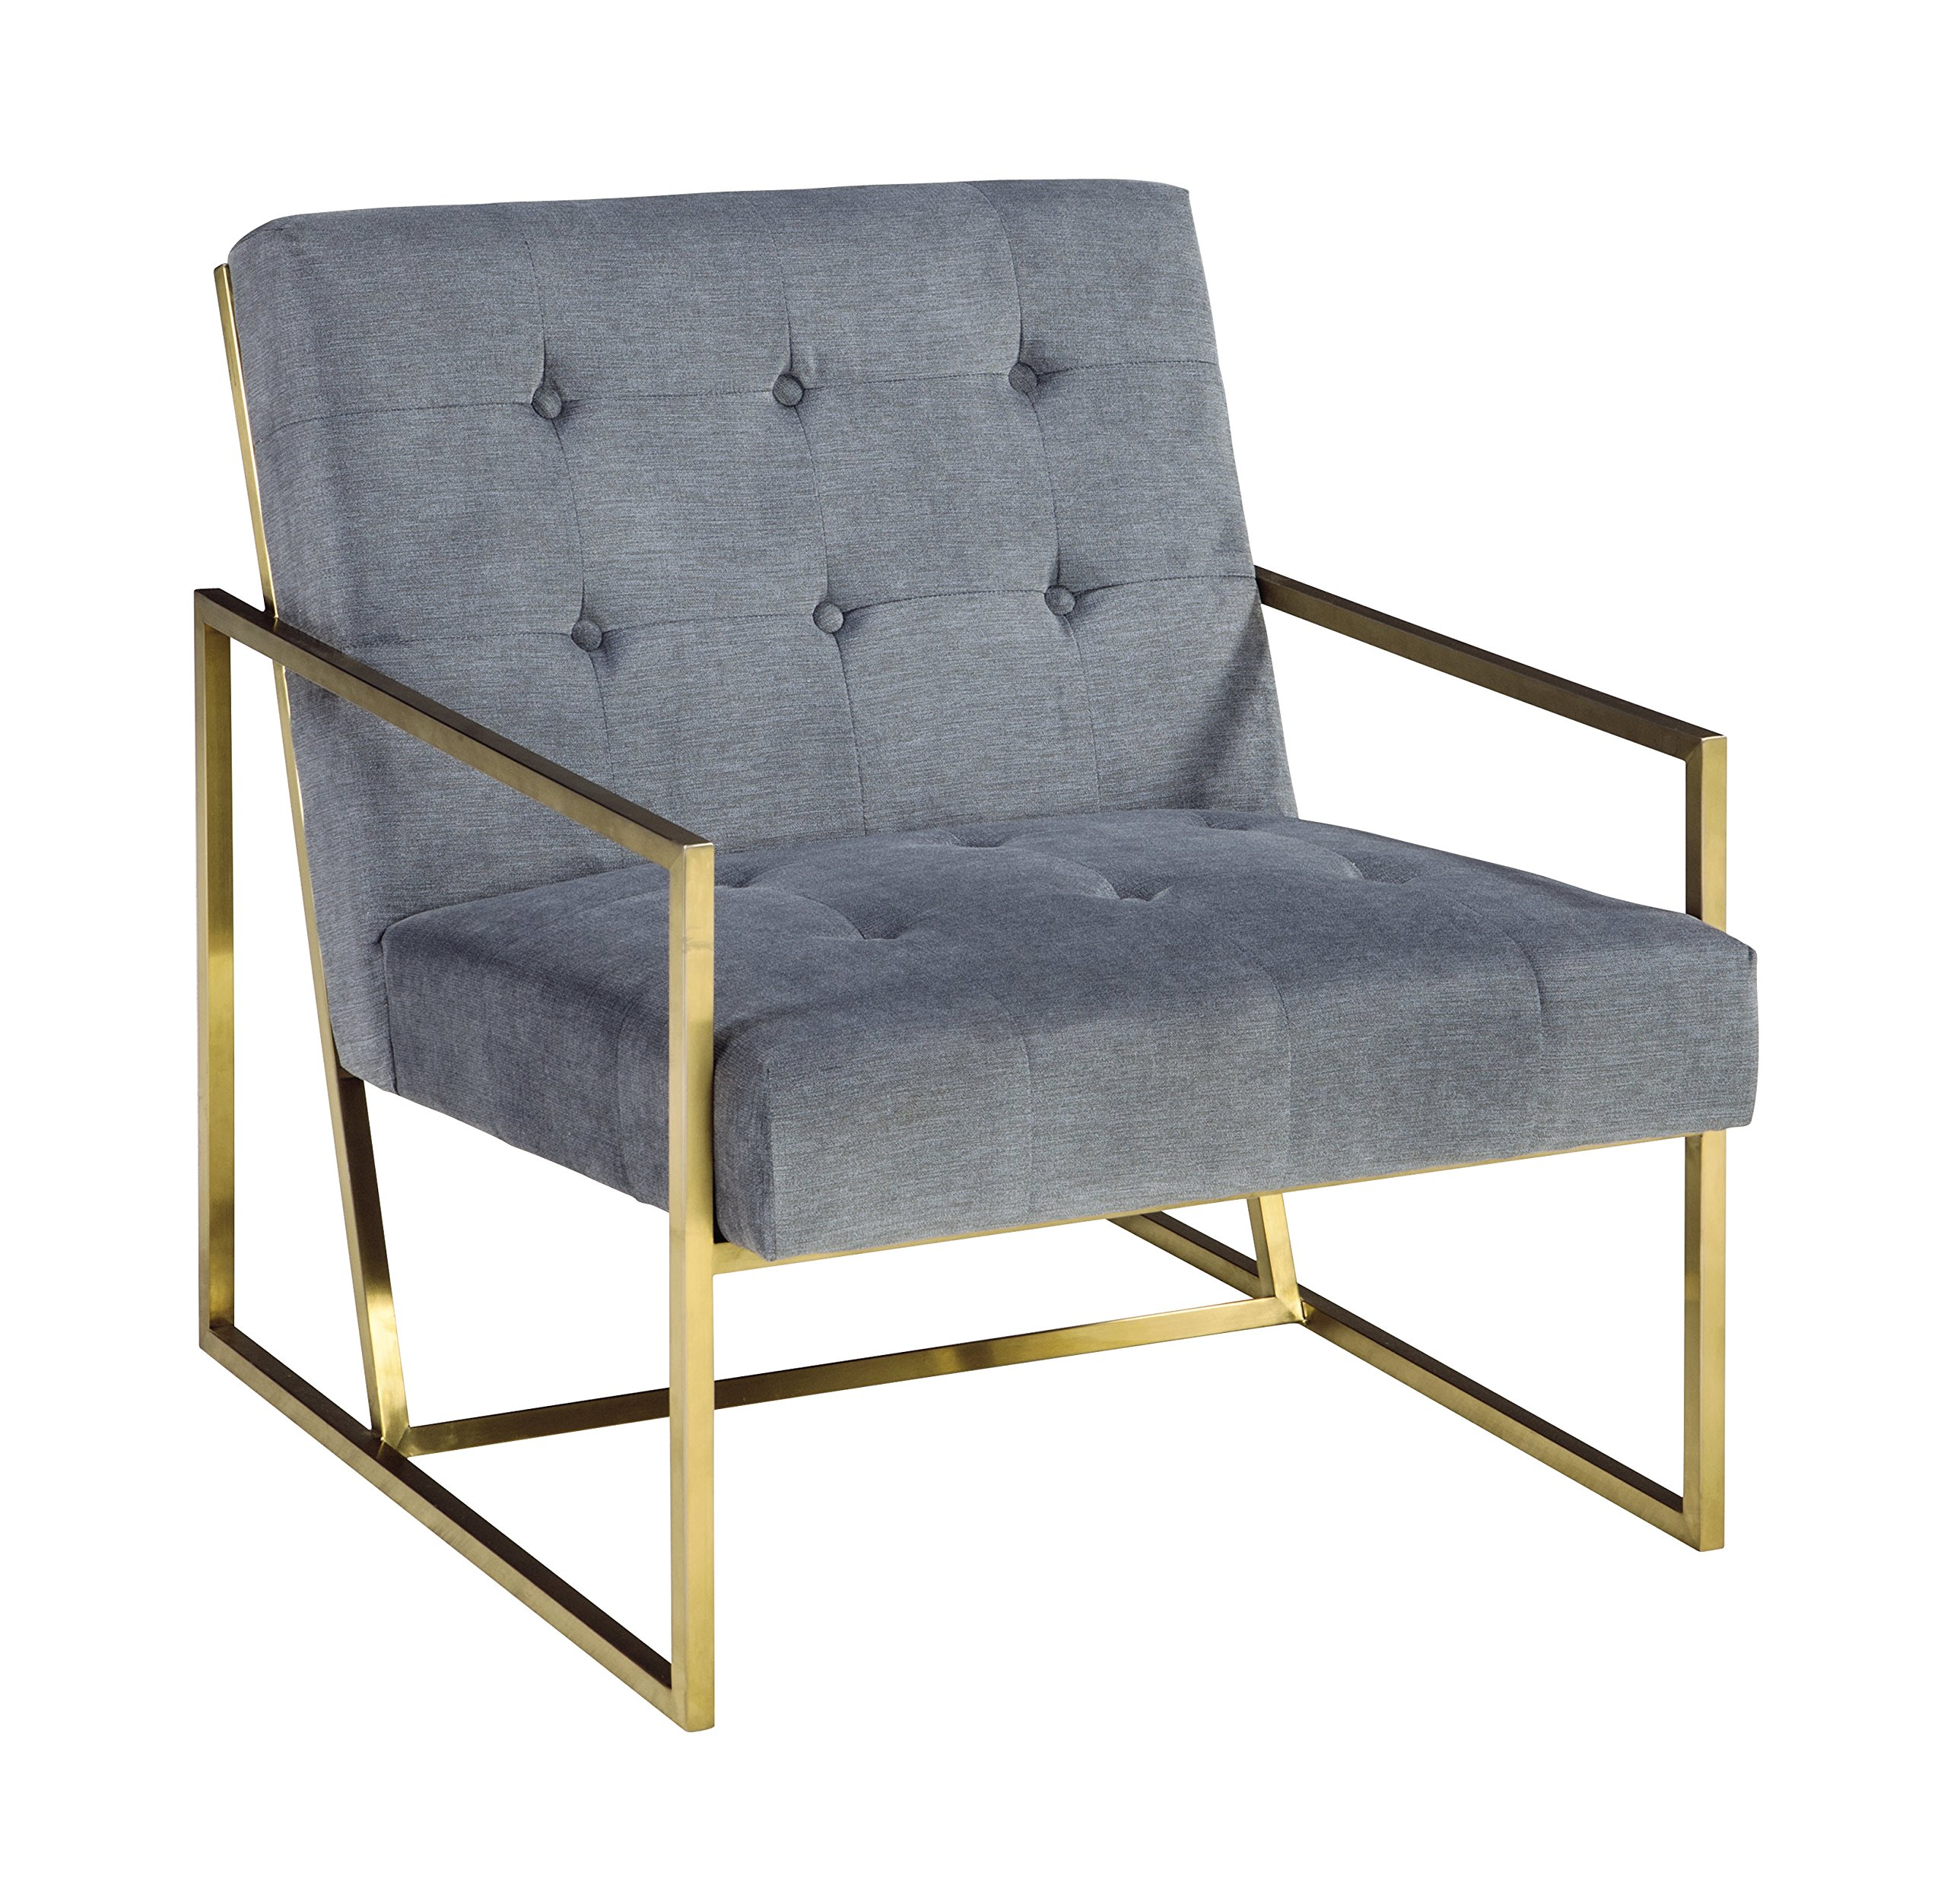 Ashley Furniture Signature Design - Seafront Accent Chair - Mid Century Modern - Cobalt - Bronze Legs - CHIC ACCENT CHAIR: Clean lines and tufted style-what's not to love? This chair is brimming with modern finesse with a touch of mid-century influence. Goldtone metallic is sure to amp up the drama HANDSOMELY CRAFTED: Sit back on high-resiliency foam cushions wrapped in polyester upholstery. Supported by an exposed metal frame in a goldtone metallic finish SOFT BLUE: Blue button-tufted box seats with velvet texturing are a special treat every time you sit down. Plus, the color combination pops thanks to the goldtone metal frame - living-room-furniture, living-room, accent-chairs - 91PqgbQMHjL -